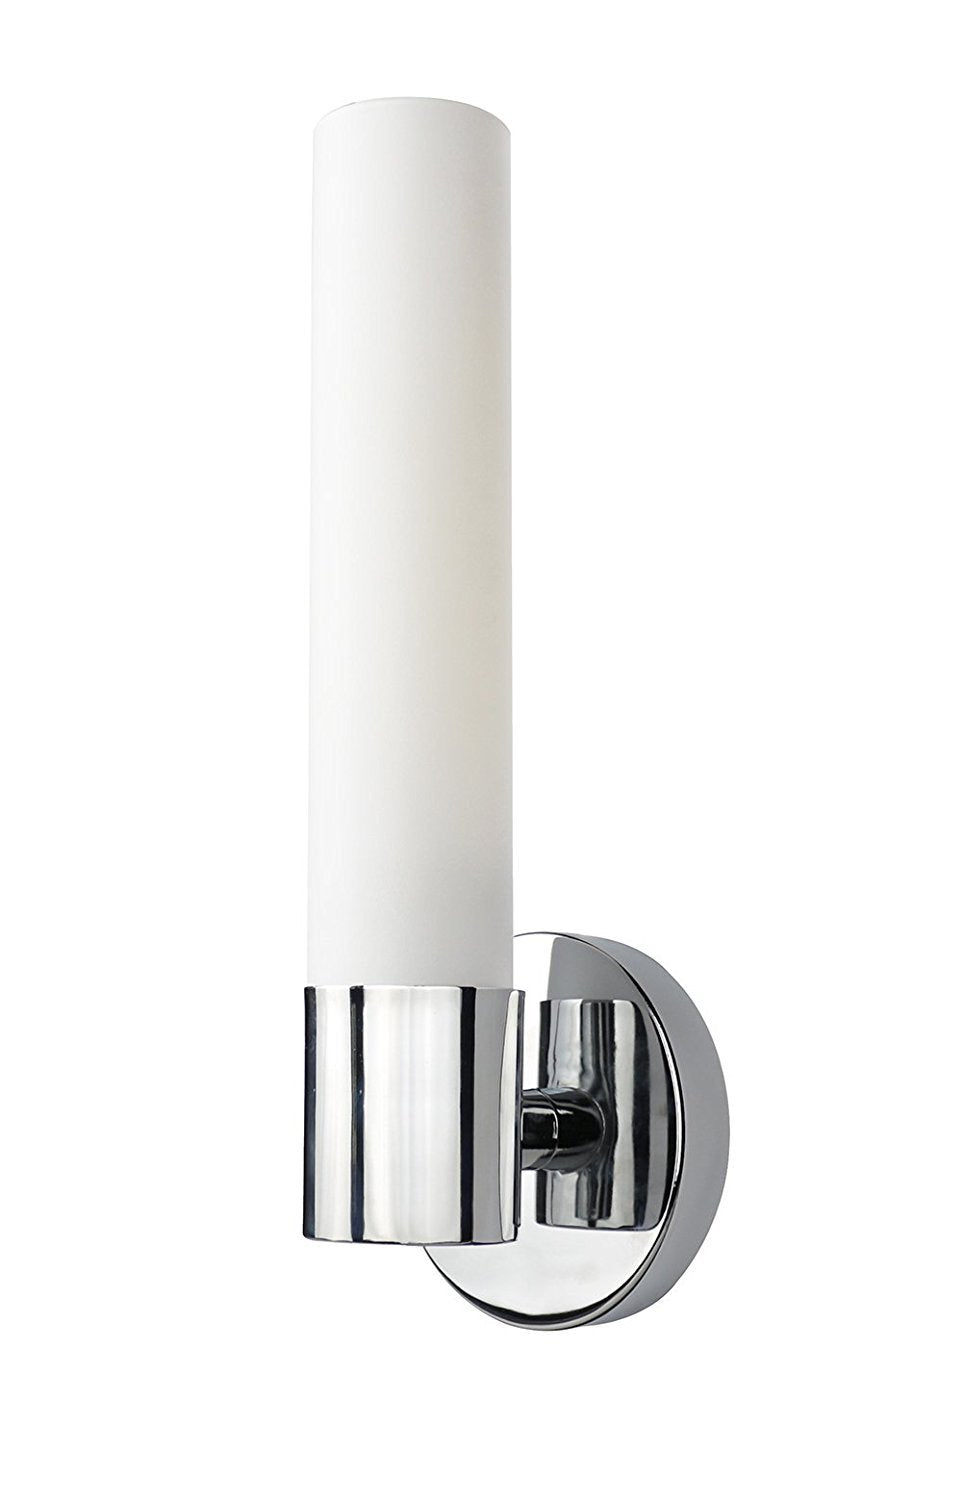 Enzo one light wall sconce lamp with frosted glass shade 2 enzo one light wall sconce lamp with frosted glass shade 2 finishes hardwired keyboard keysfo Images